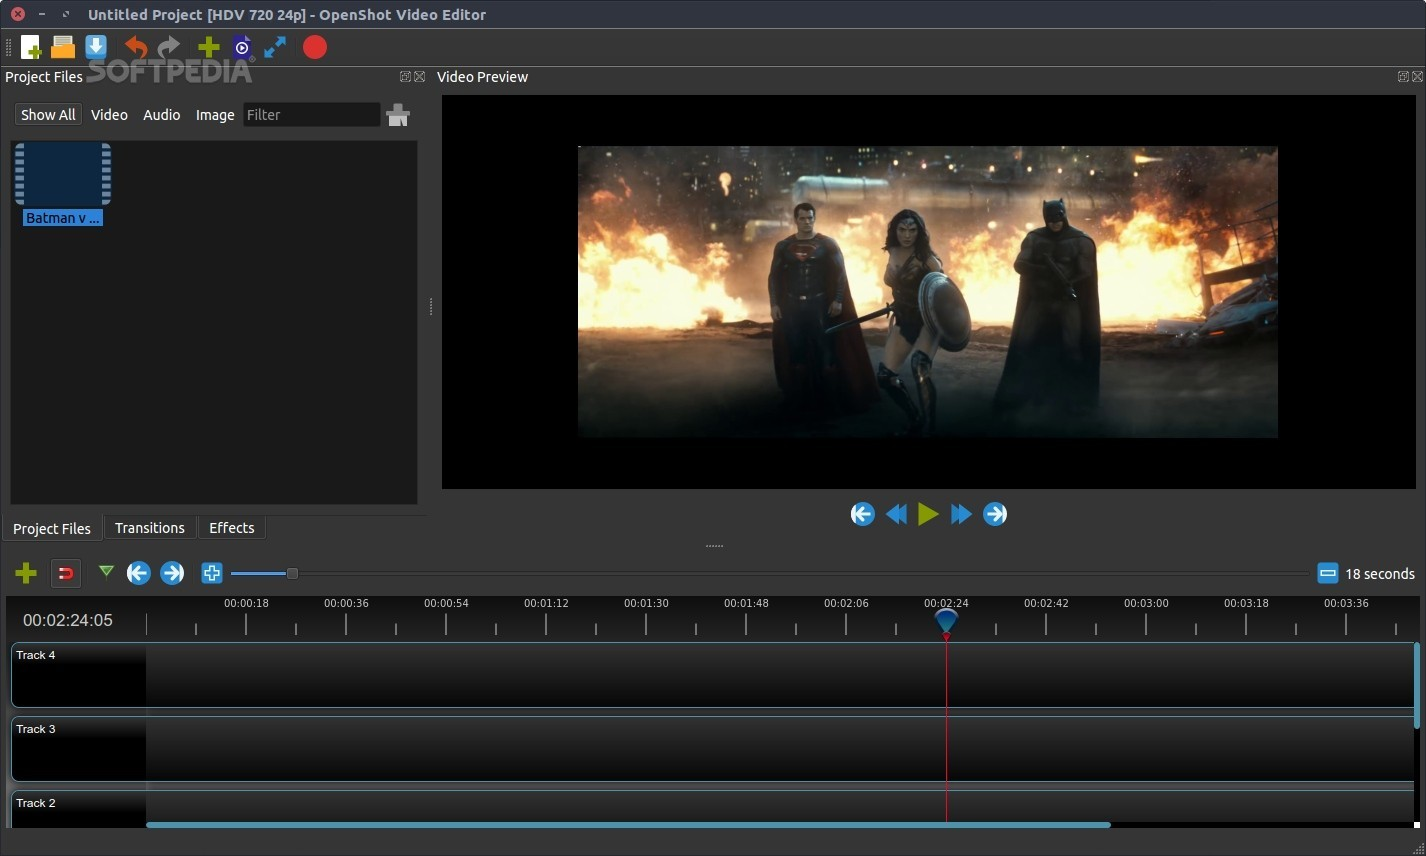 openshot-video-editor-2-0-6-beta-3-is-a-massive-release-500270-2